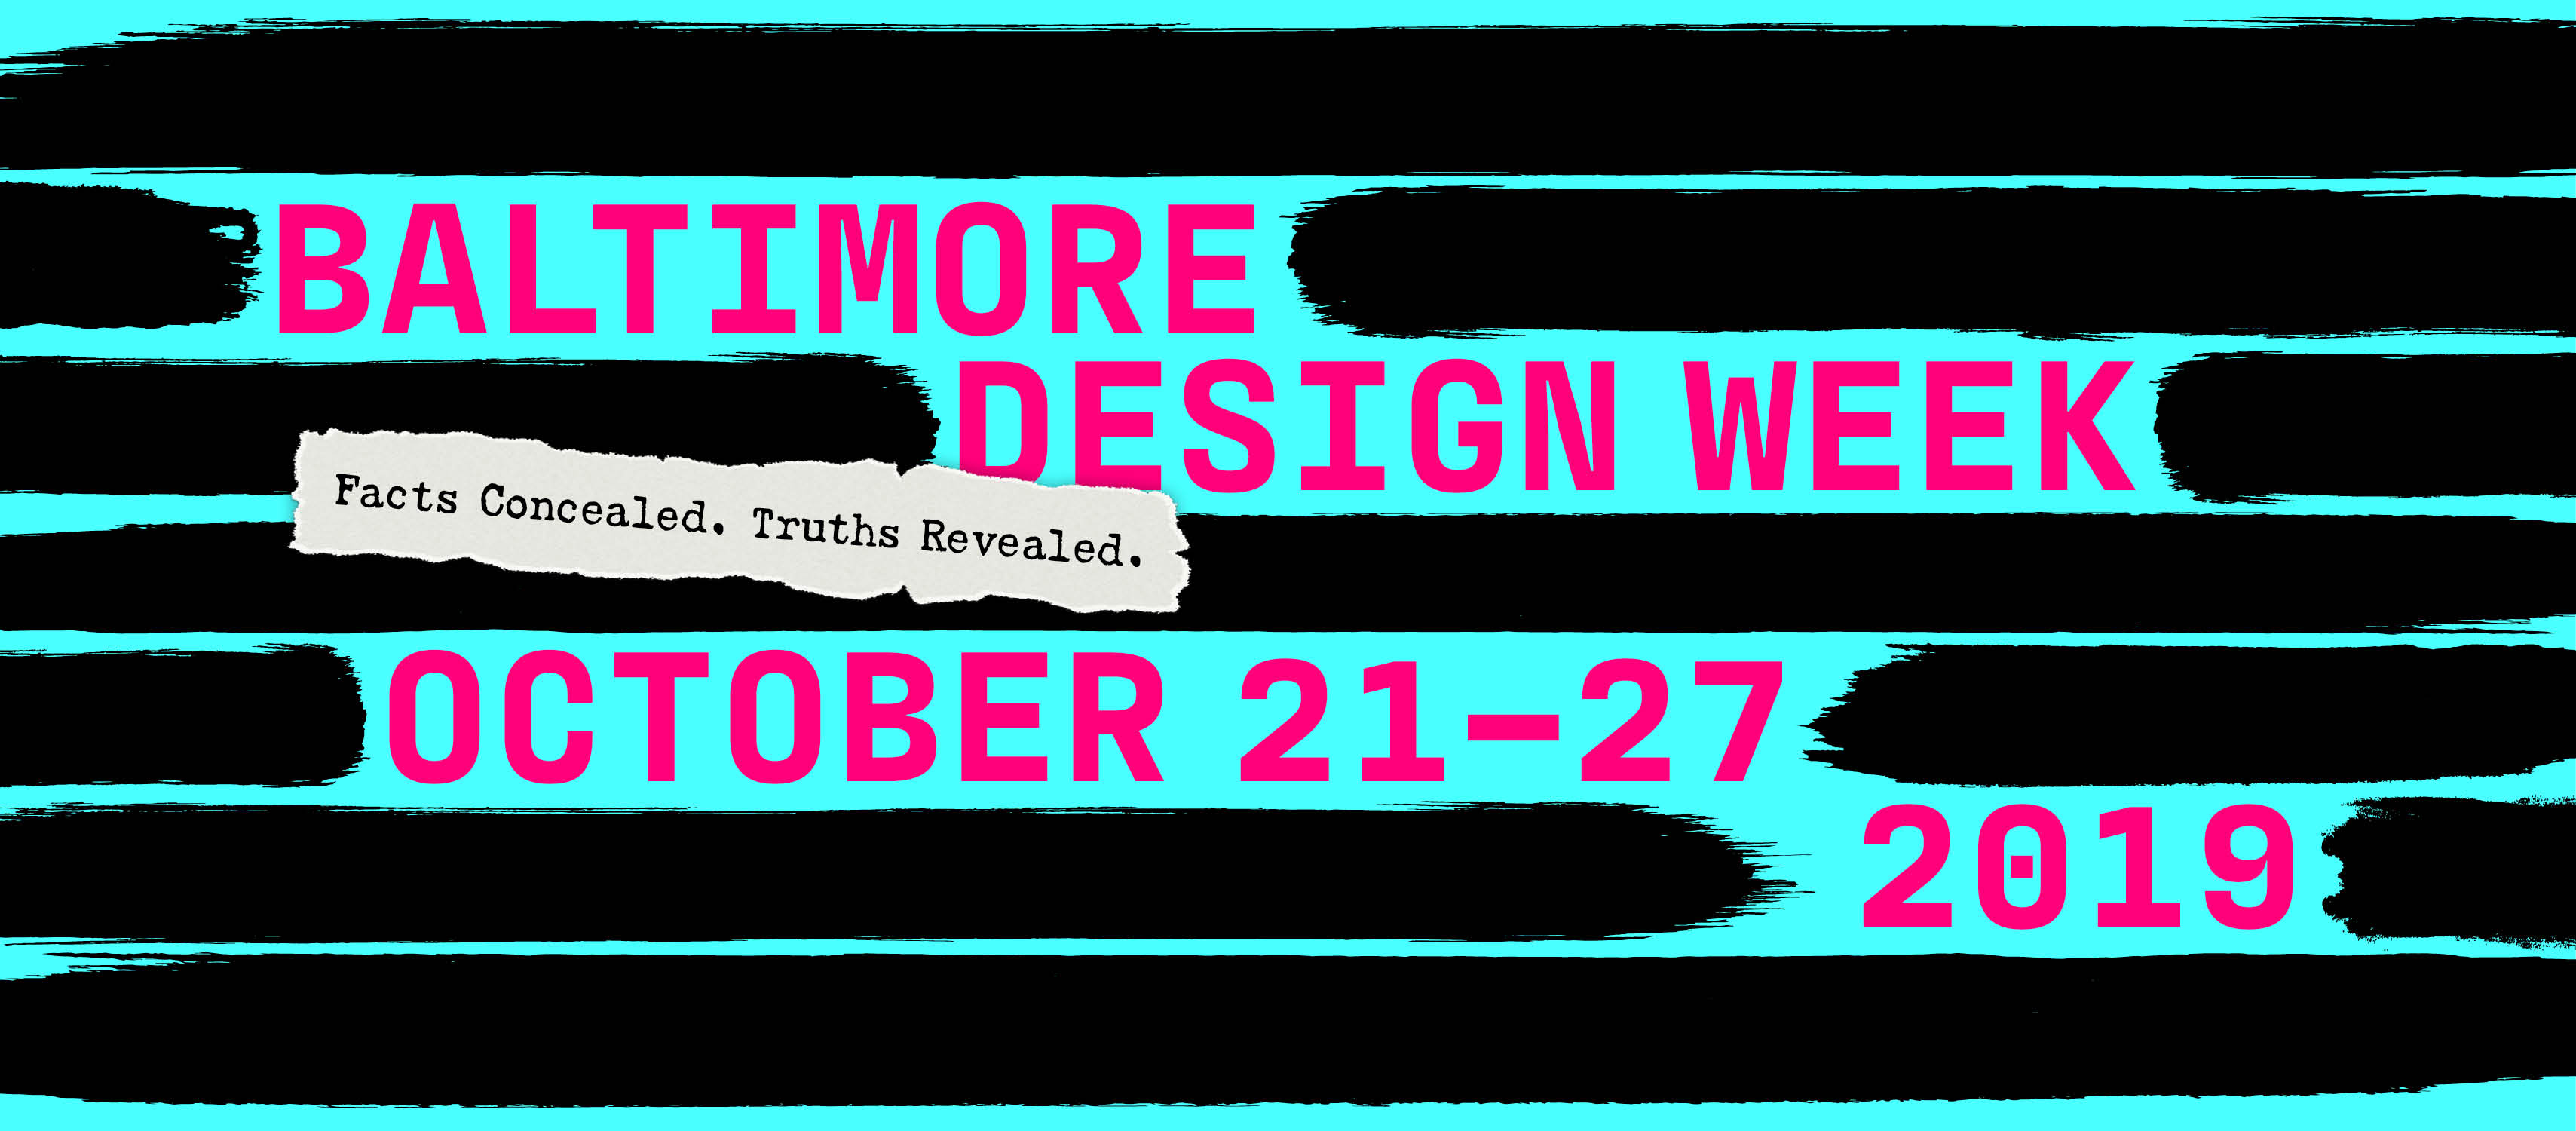 Baltimore Design Week 2019 Banner